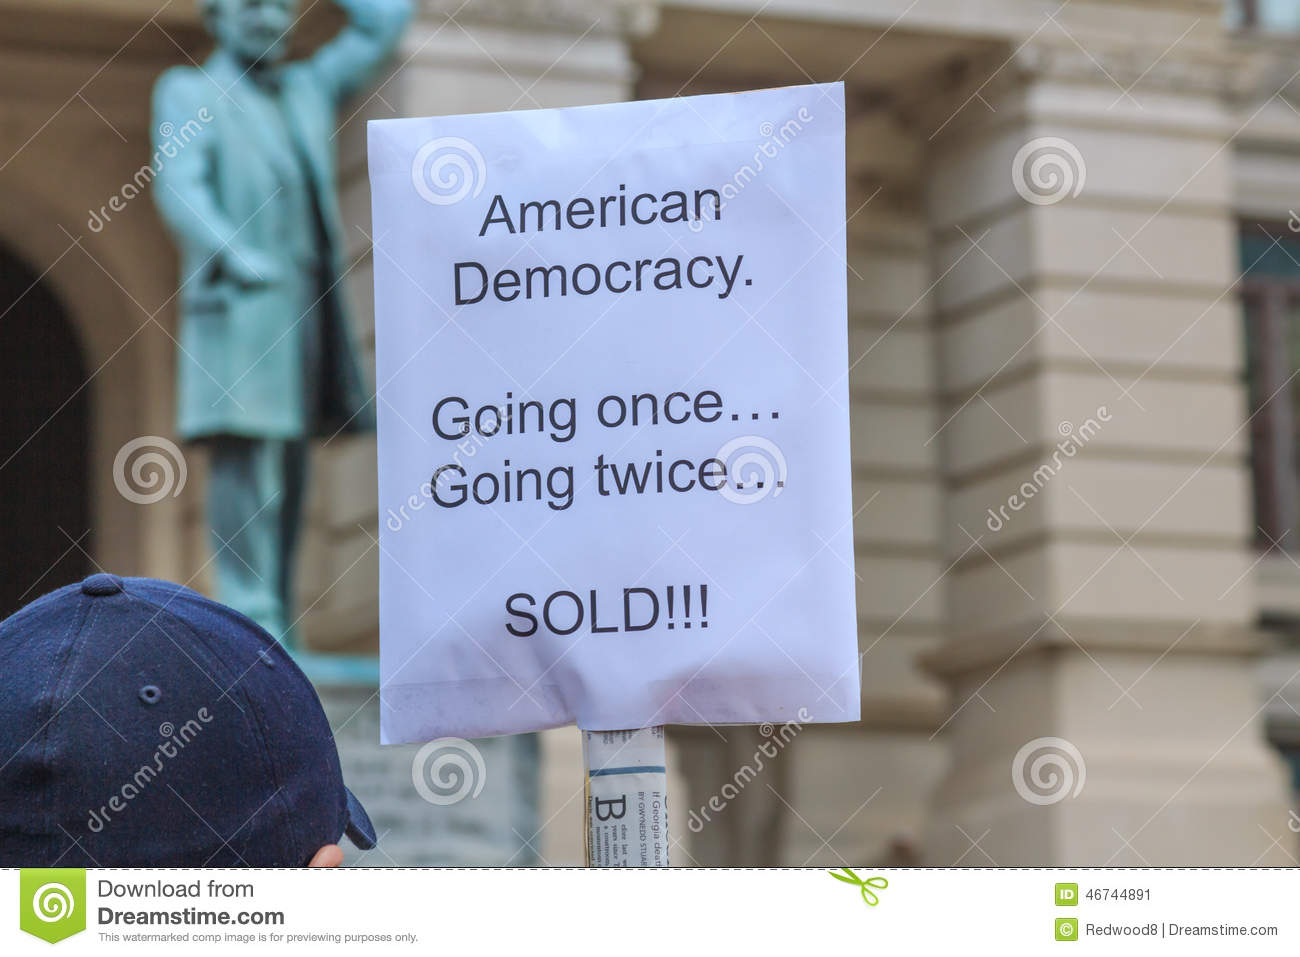 Democracy Bought and Sold